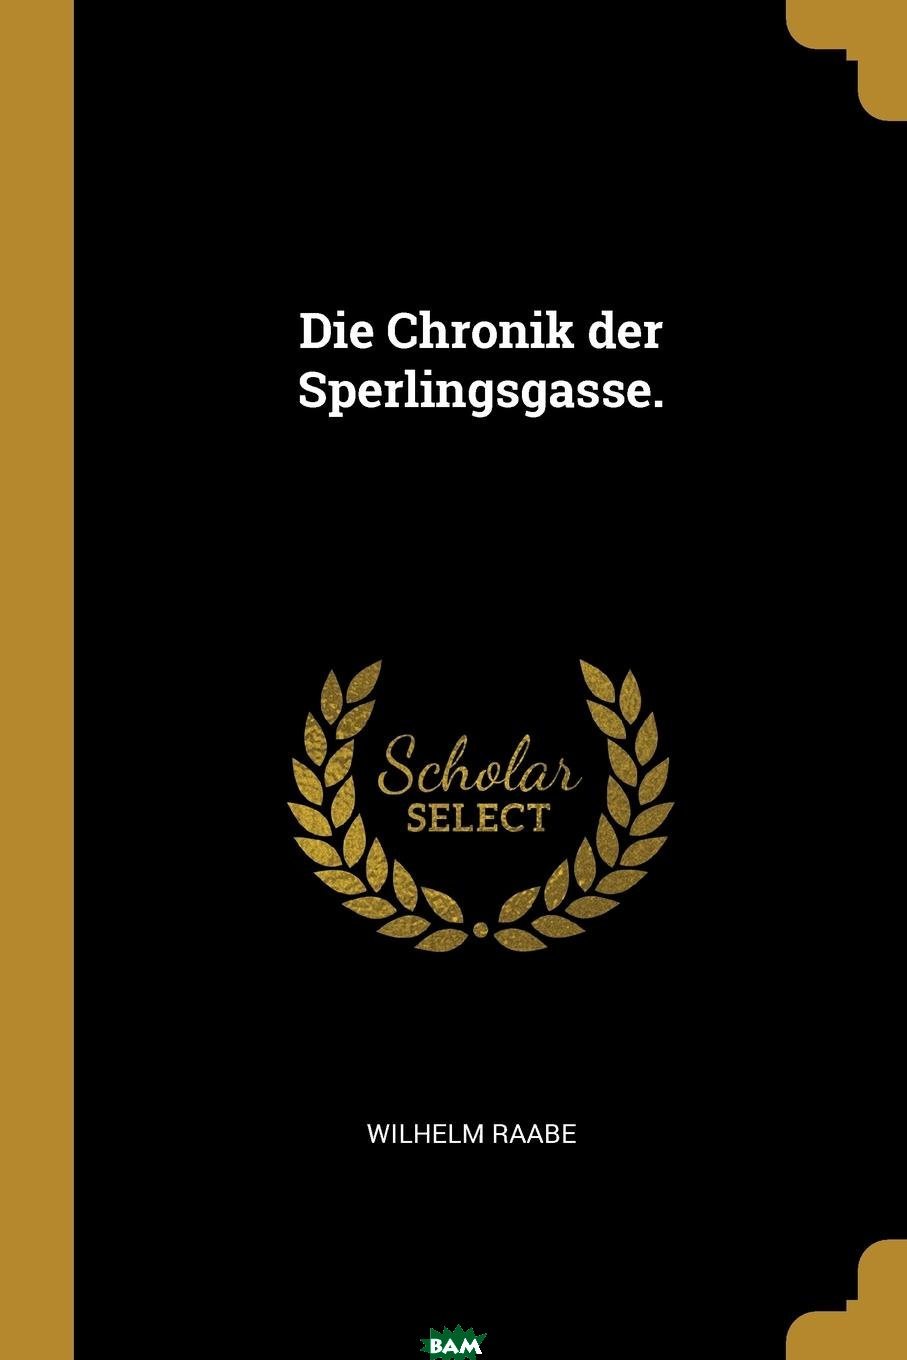 Купить Die Chronik der Sperlingsgasse., Wilhelm Raabe, 9781011358816